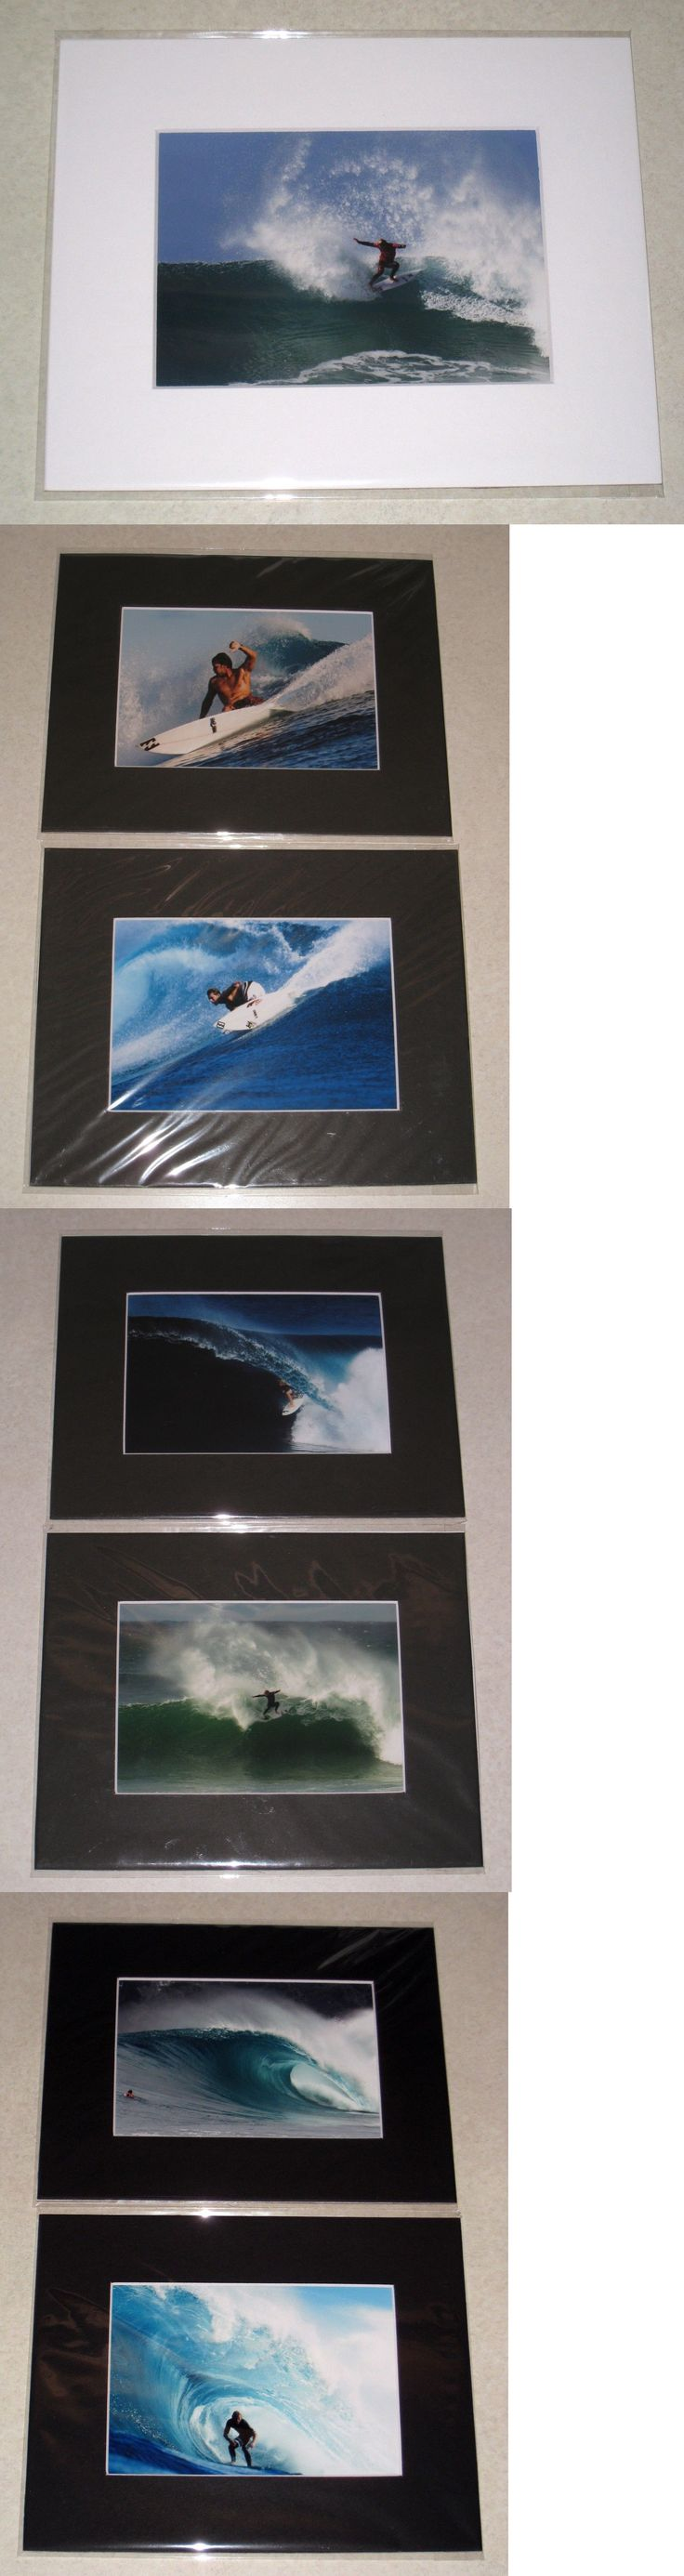 Posters and Prints 58135: John John Florence Small Matted Prints With Extras By Pete Frieden -> BUY IT NOW ONLY: $70 on eBay!